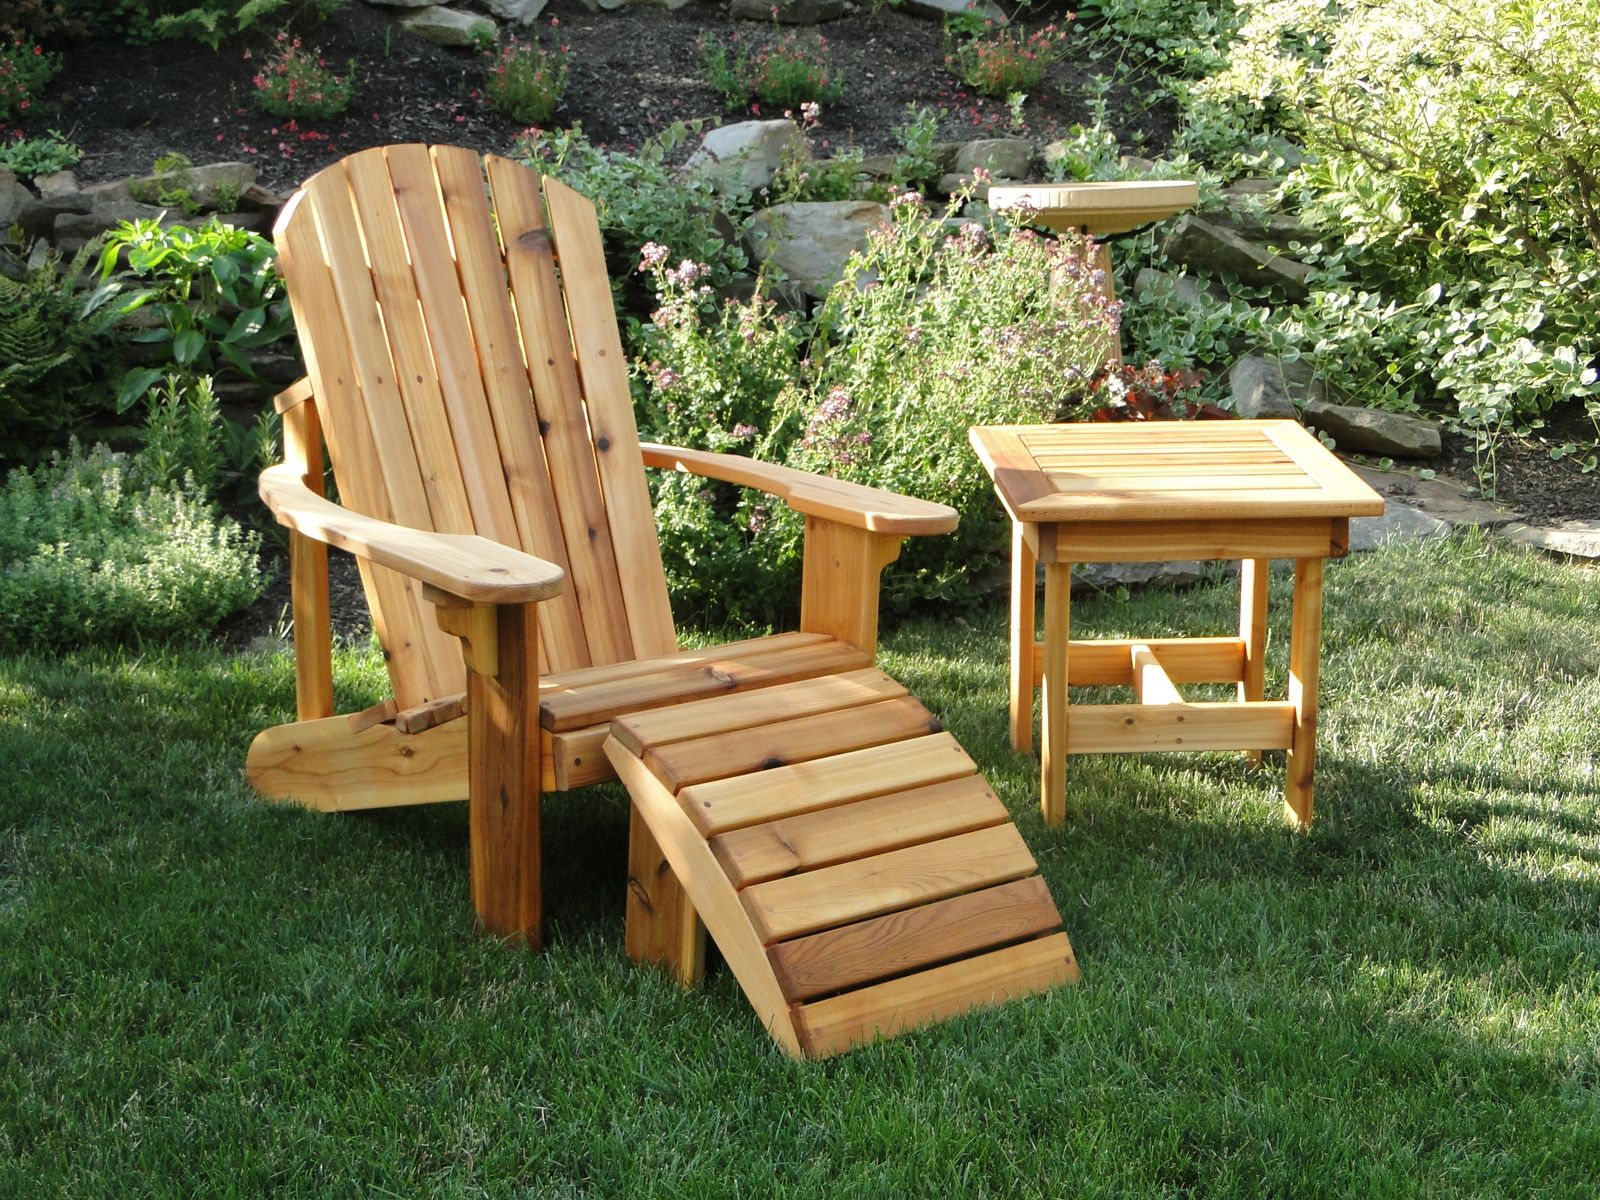 Hand Crafted Adirondack Chair With Leg Rest And Side Table